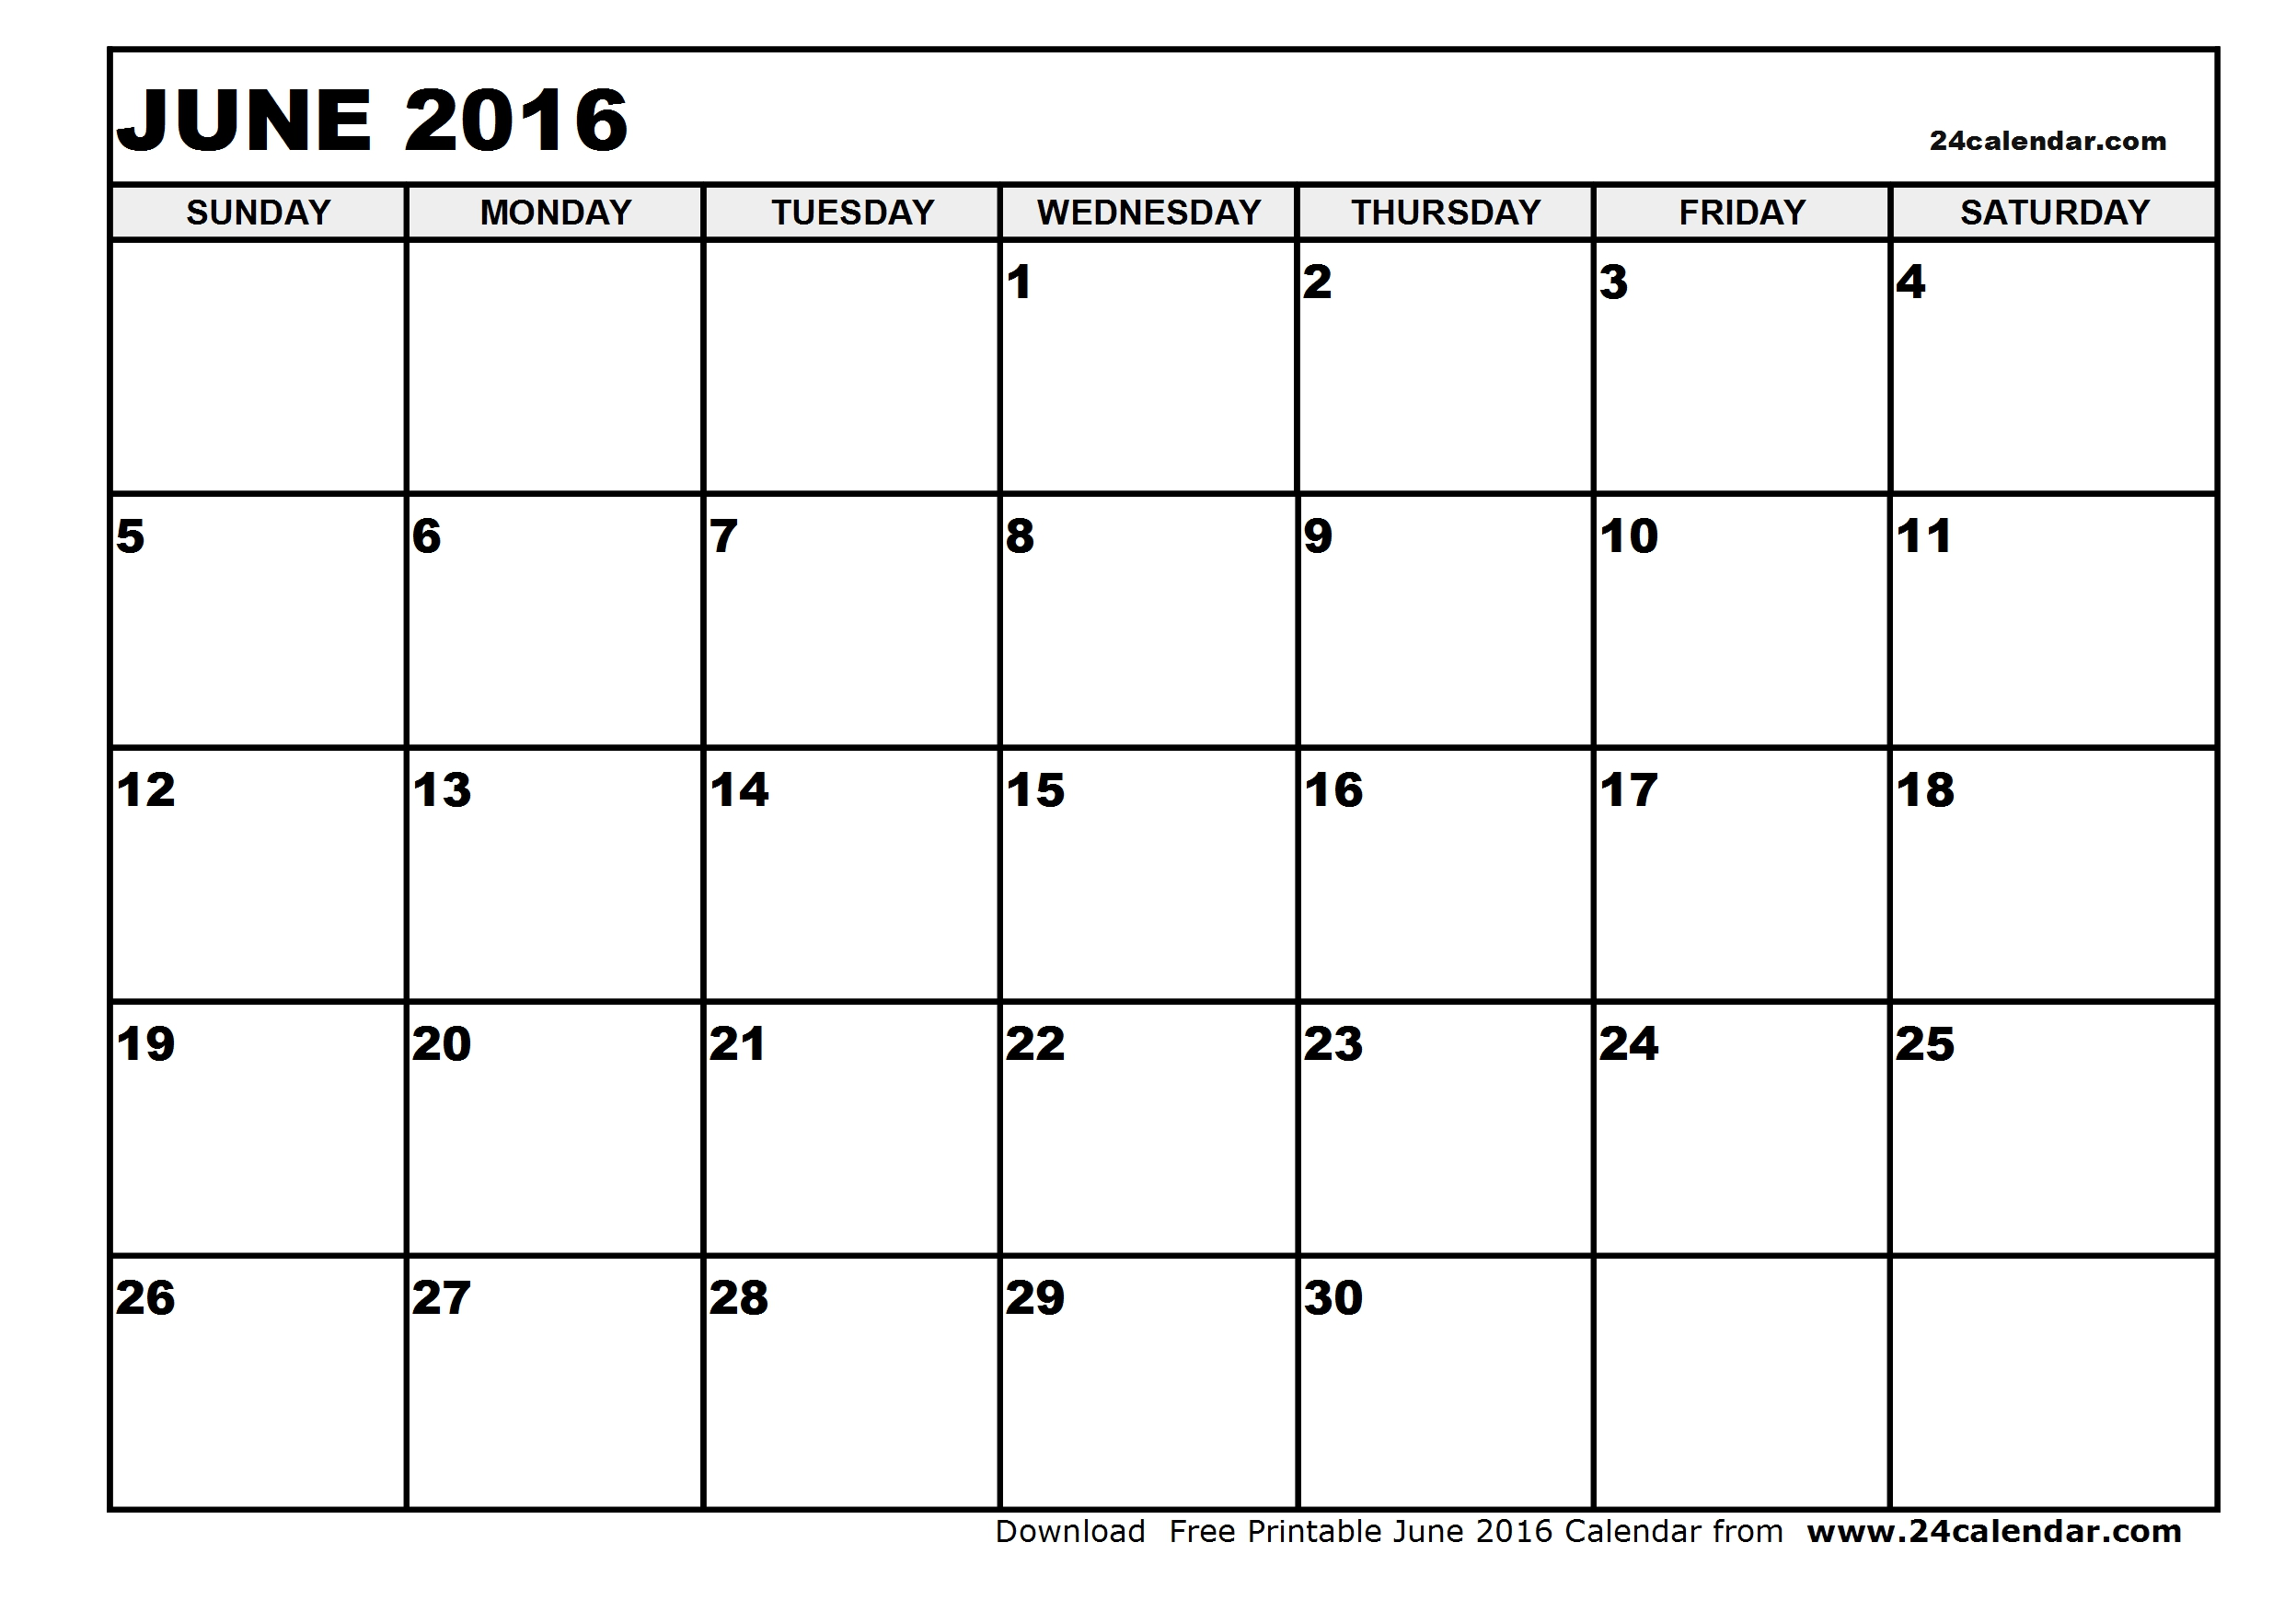 Blank june calendar clipart.